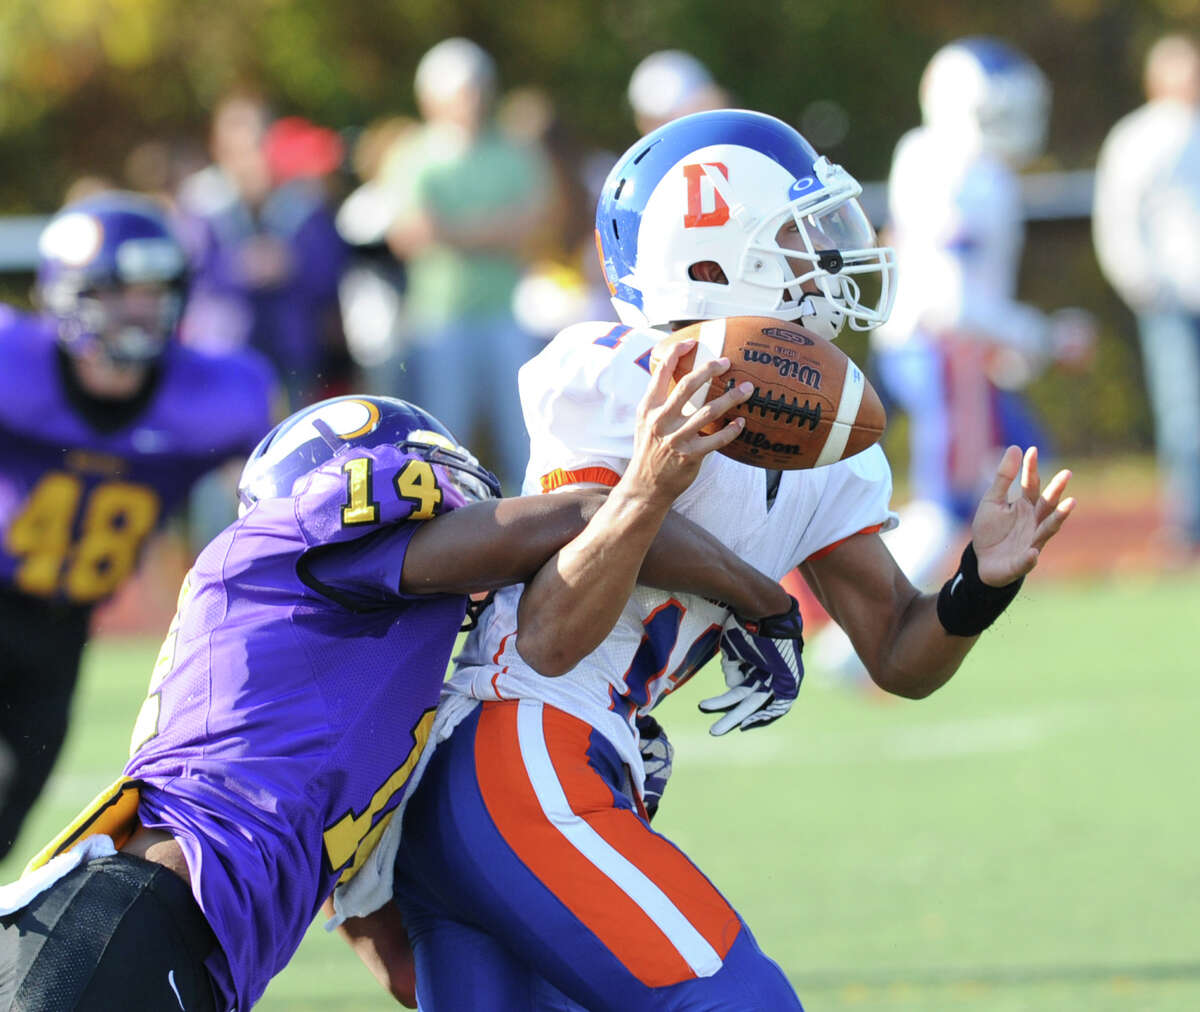 Westhill's Chianta Holtzclaw (# 14) hits Danbury quarterback Anferny Ith causing a second quarter fumble that Westhill recovered during the High school football game between Westhill High School and Danbury High School at Westhill High School in Stamford, Saturday, Nov. 2, 2013.